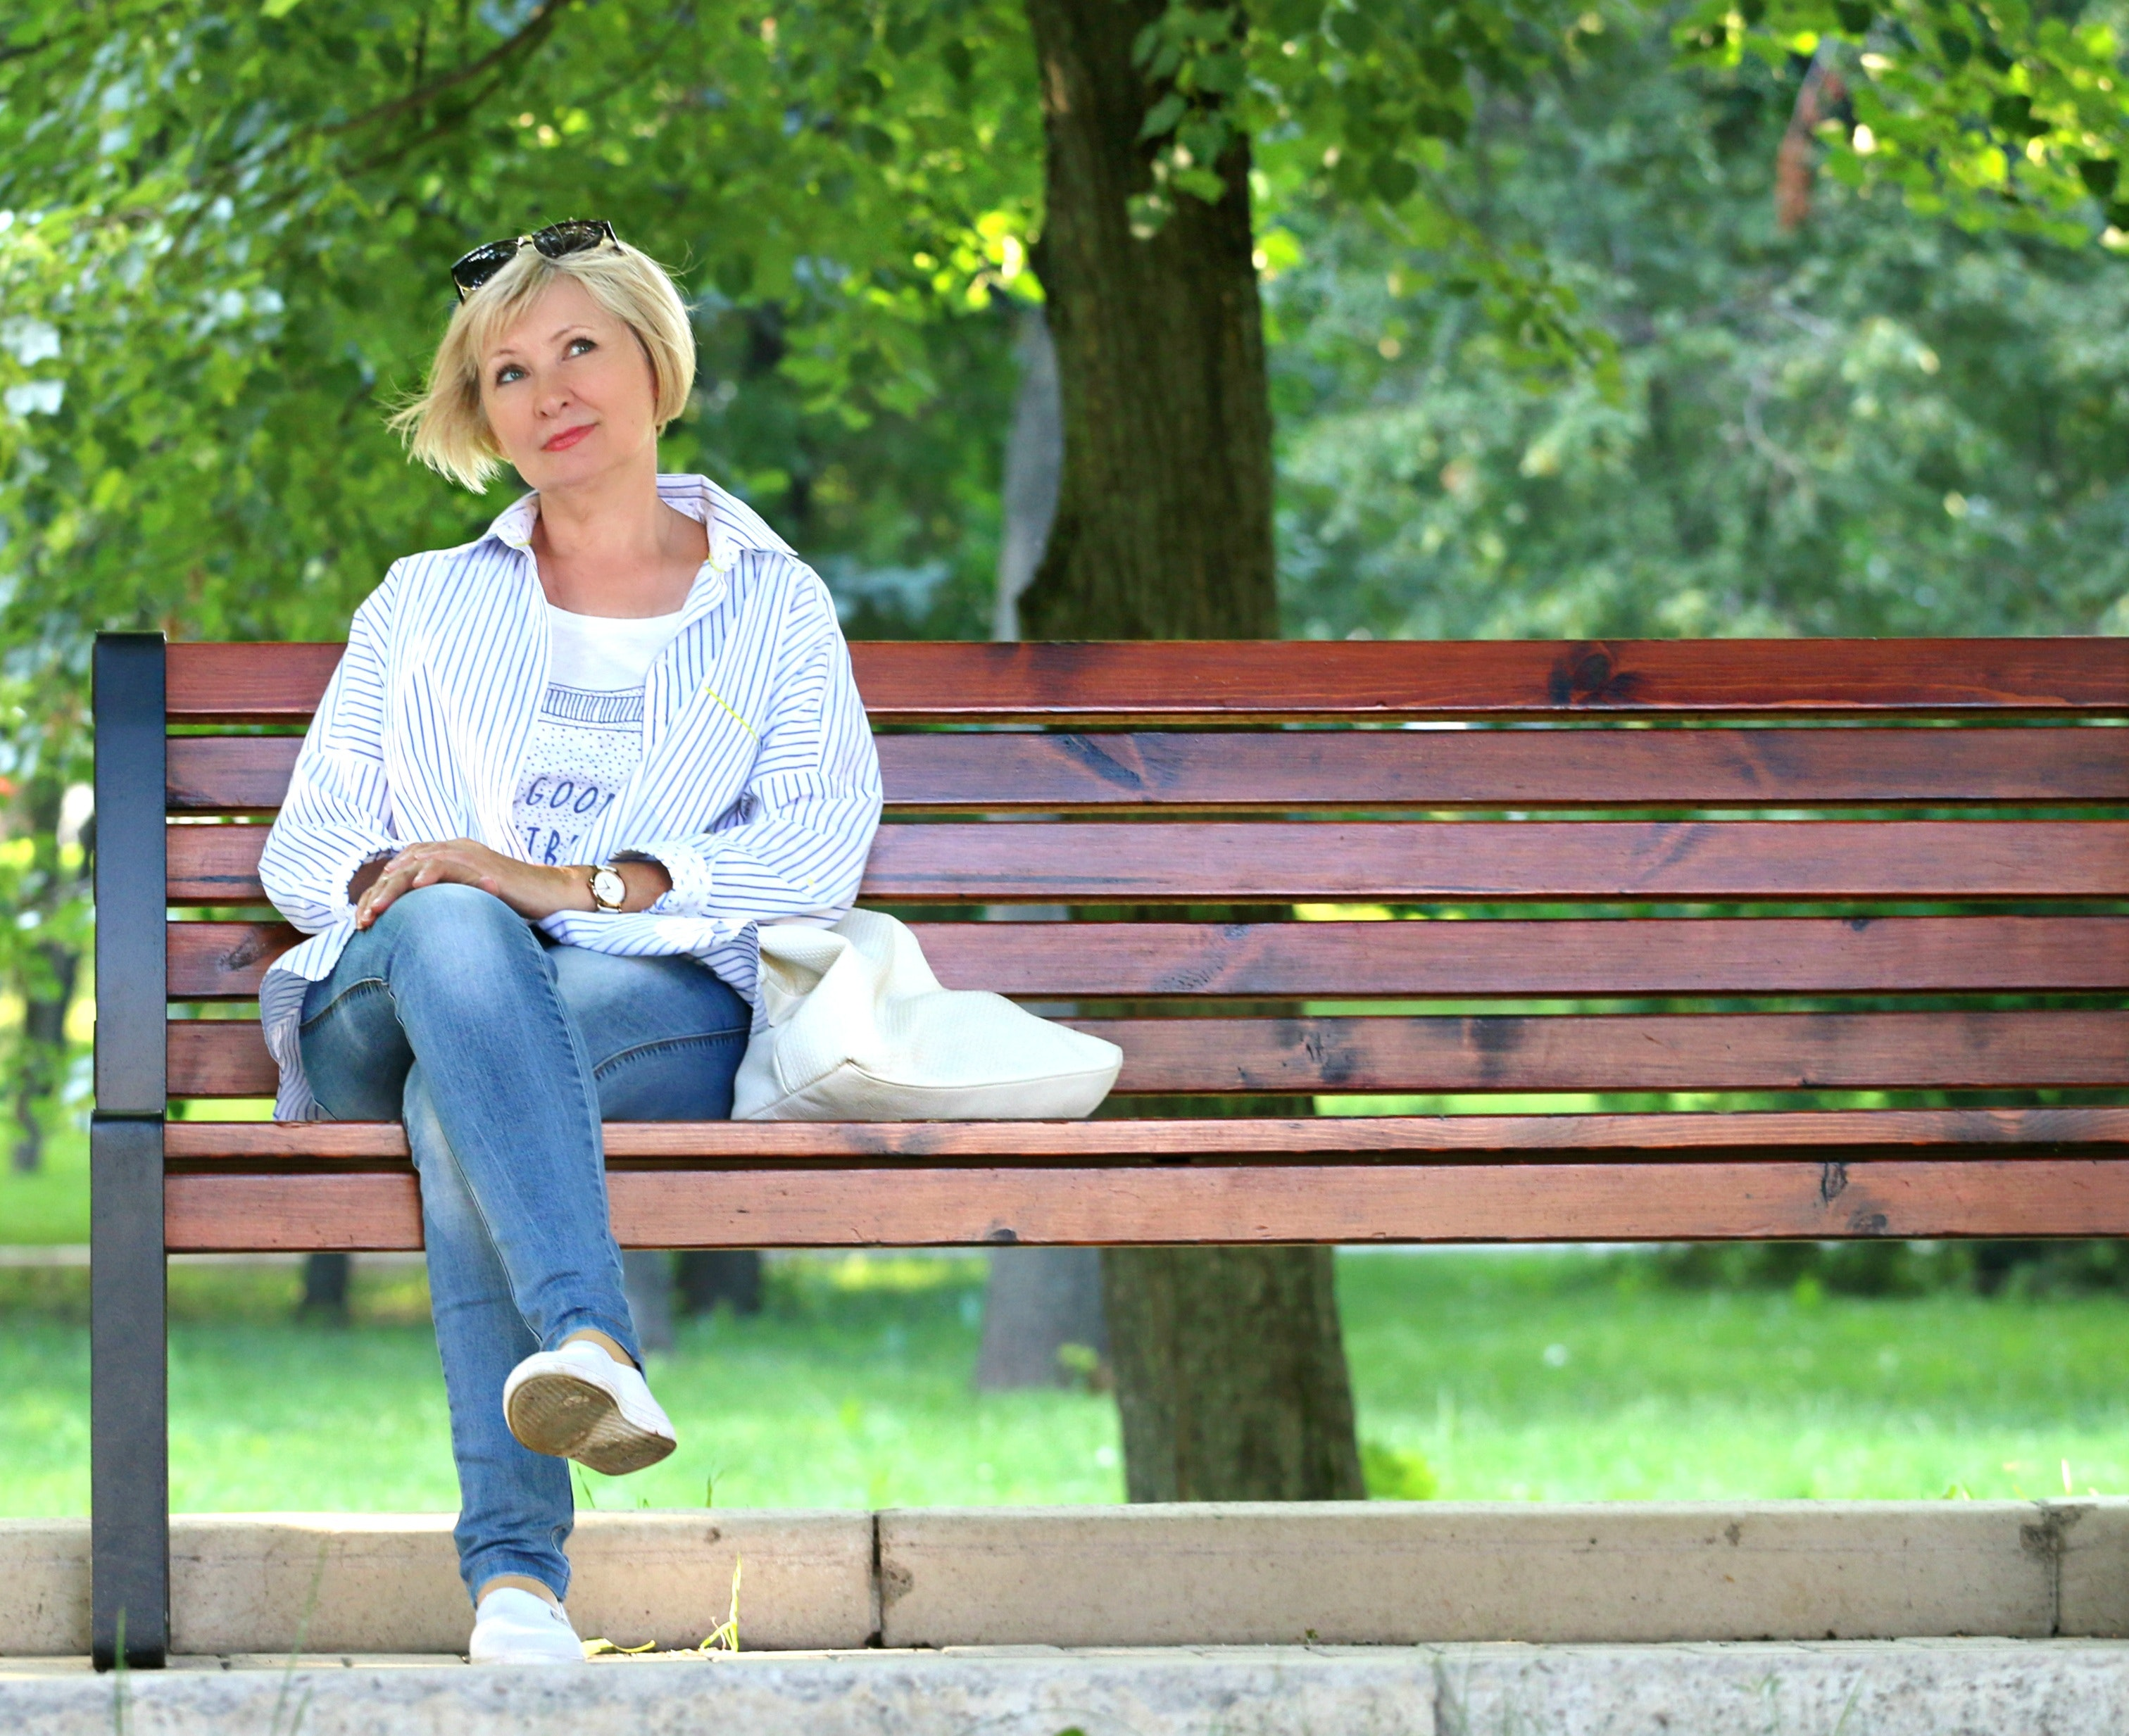 Thinking Woman in White Jacket and White Scoop Neck Shirt Blue Denim Jeans Sitting on Brown Wooden Bench Beside Green Trees during Daytime, Adult, Beautiful, Bench, Blond, HQ Photo